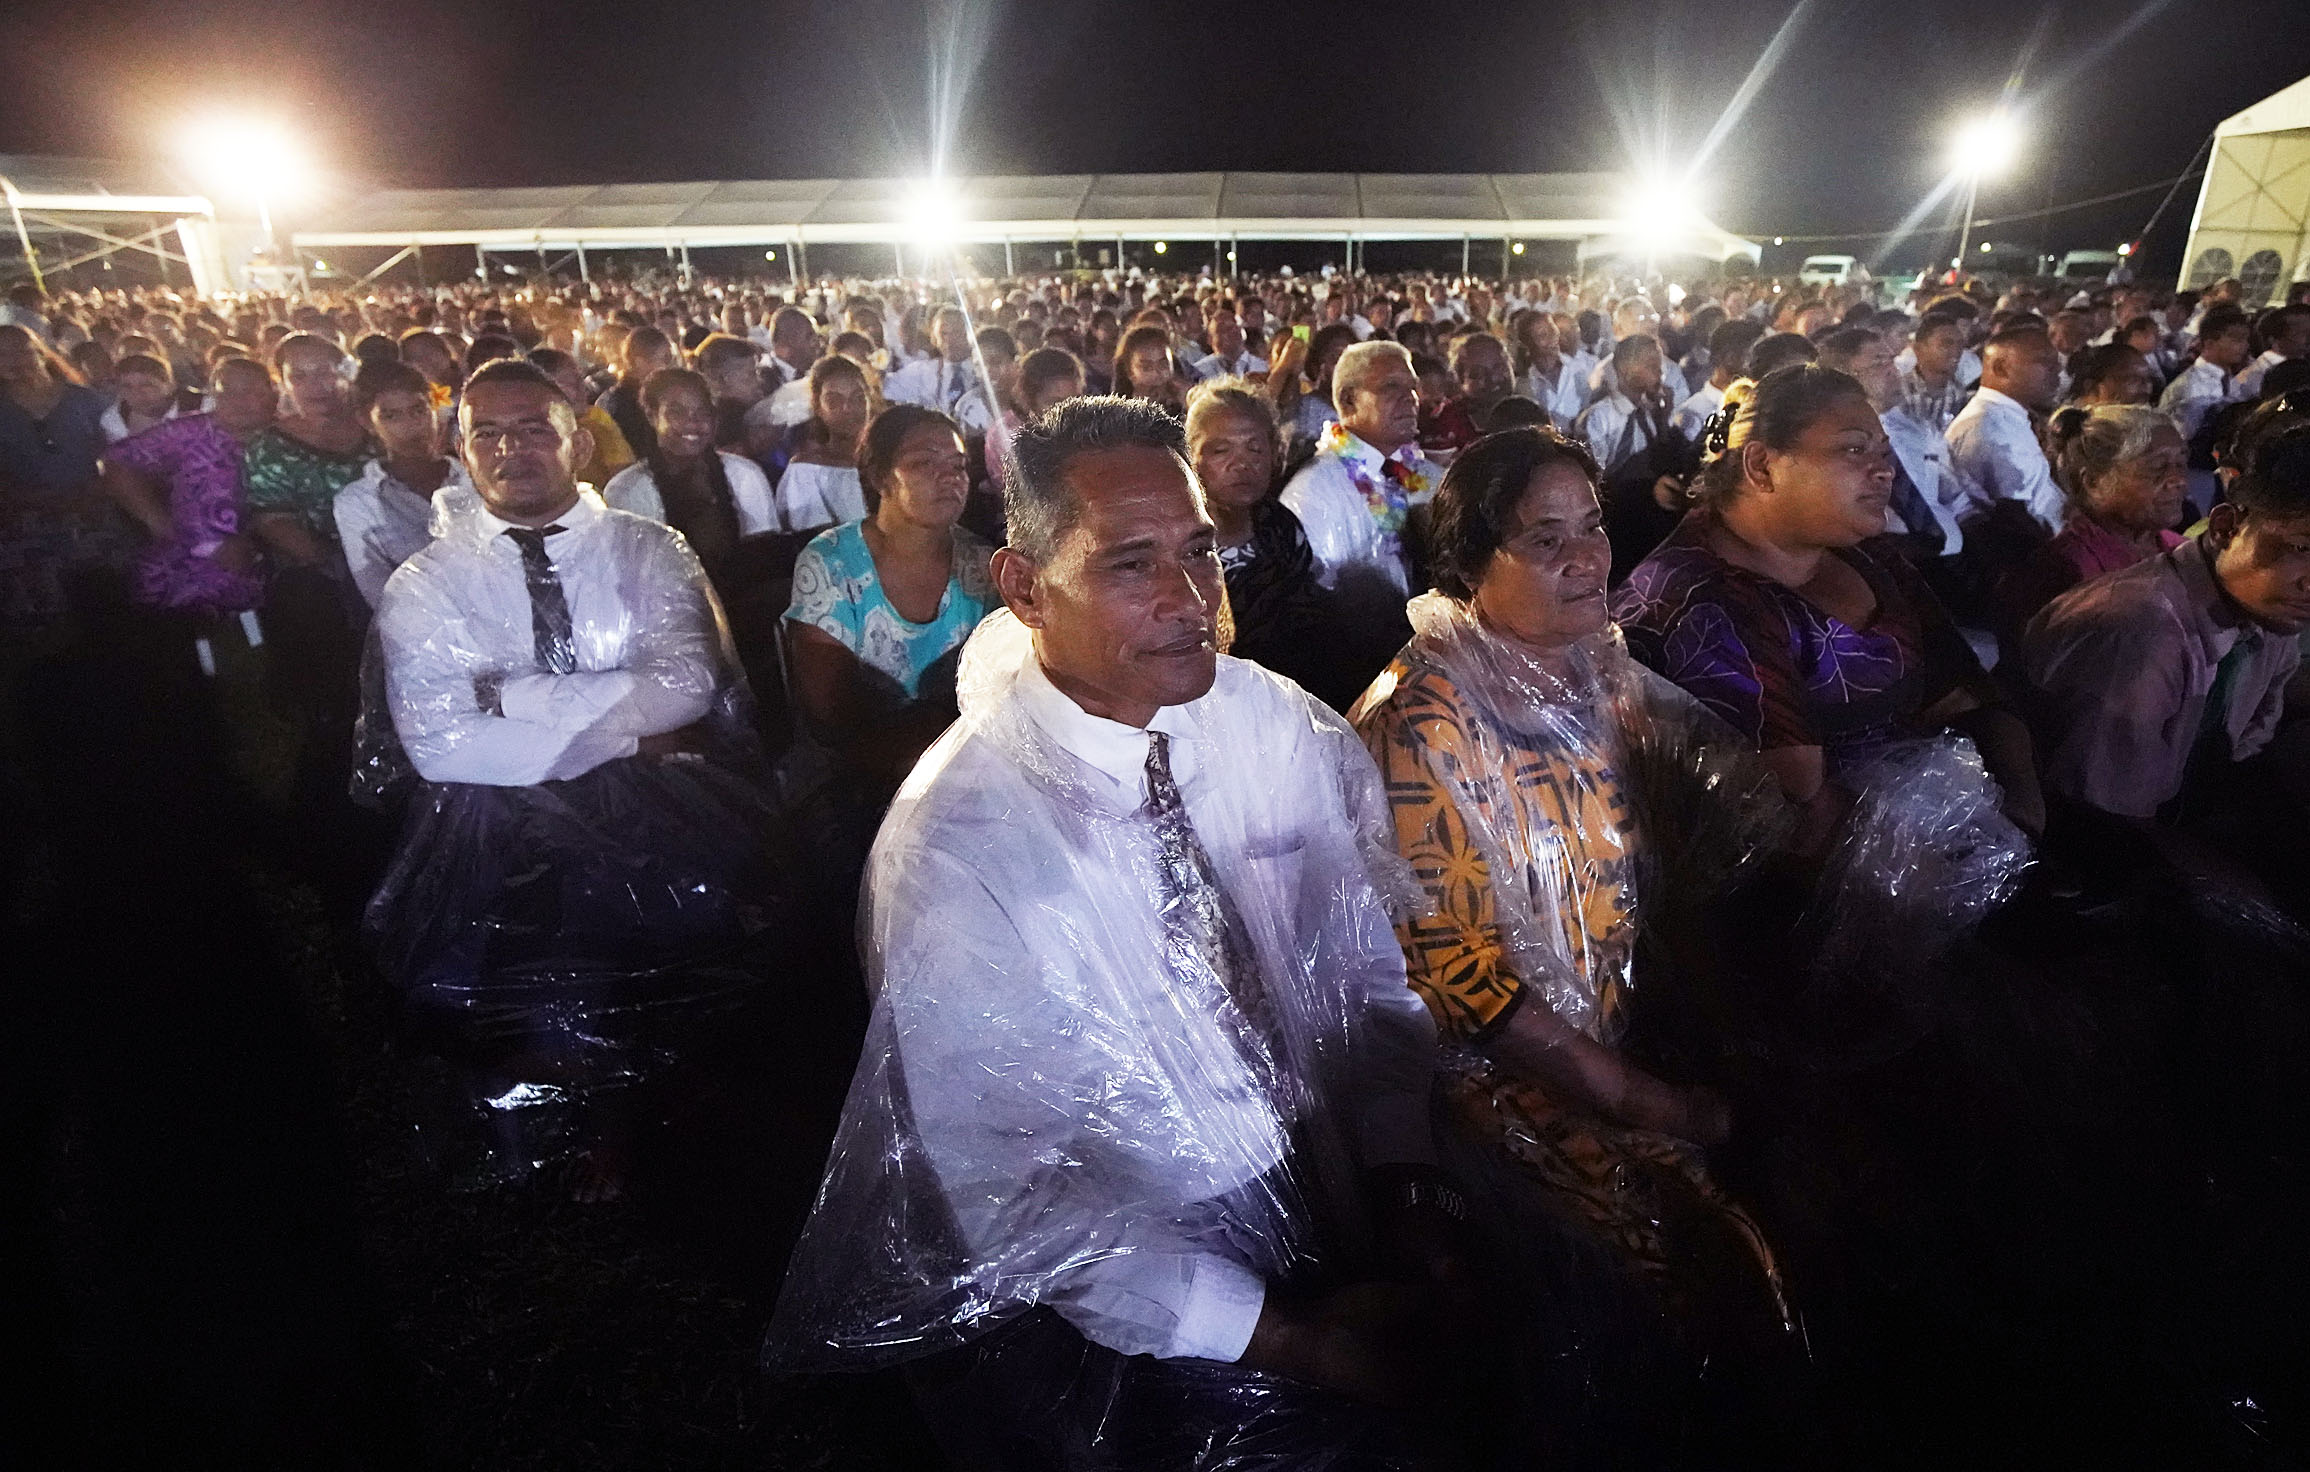 Ioane Savai'inaea and his wife, Oliana, listen during a devotional with President Russell M. Nelson of The Church of Jesus Christ of Latter-day Saints in Apia, Samoa, on Saturday, May 18, 2019.